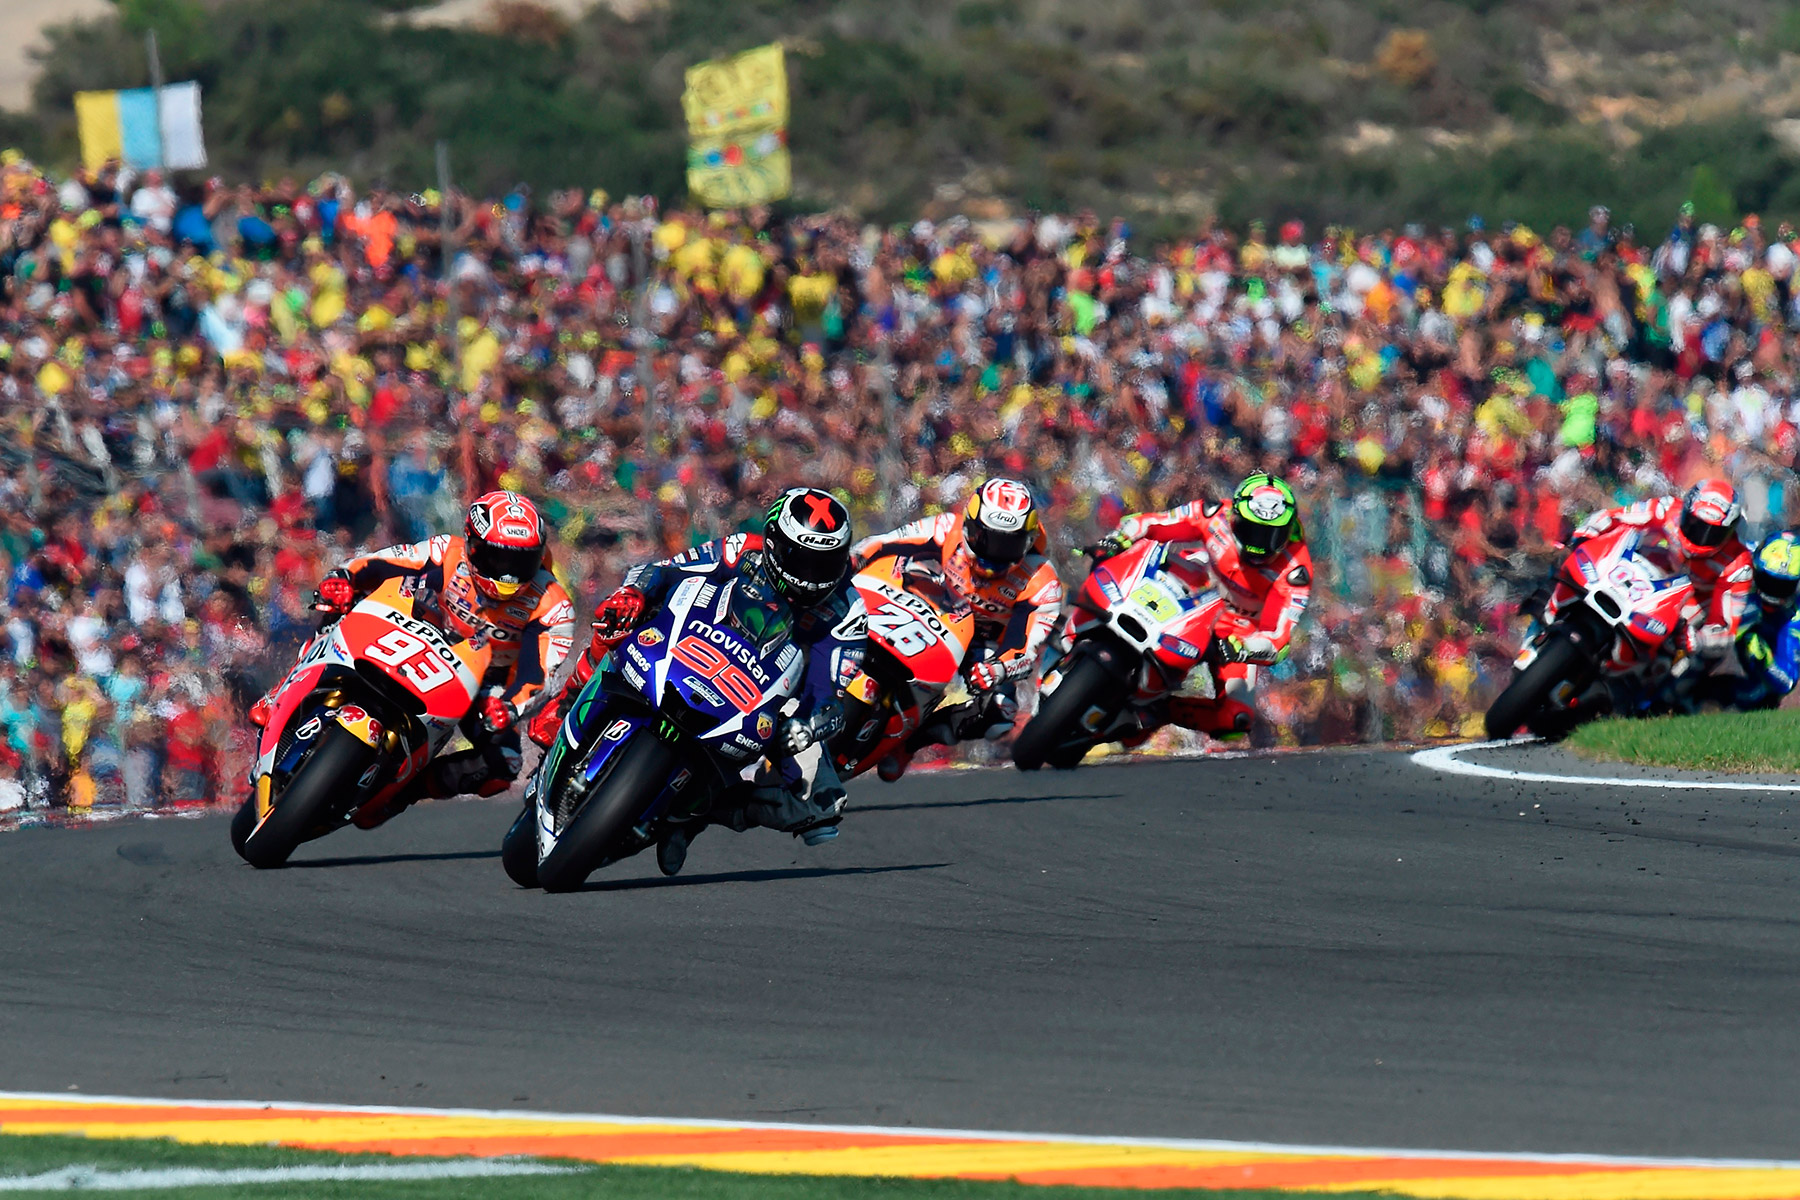 https://feetuphostels.files.wordpress.com/2016/11/motogp-valencia-2016-horarios.jpg